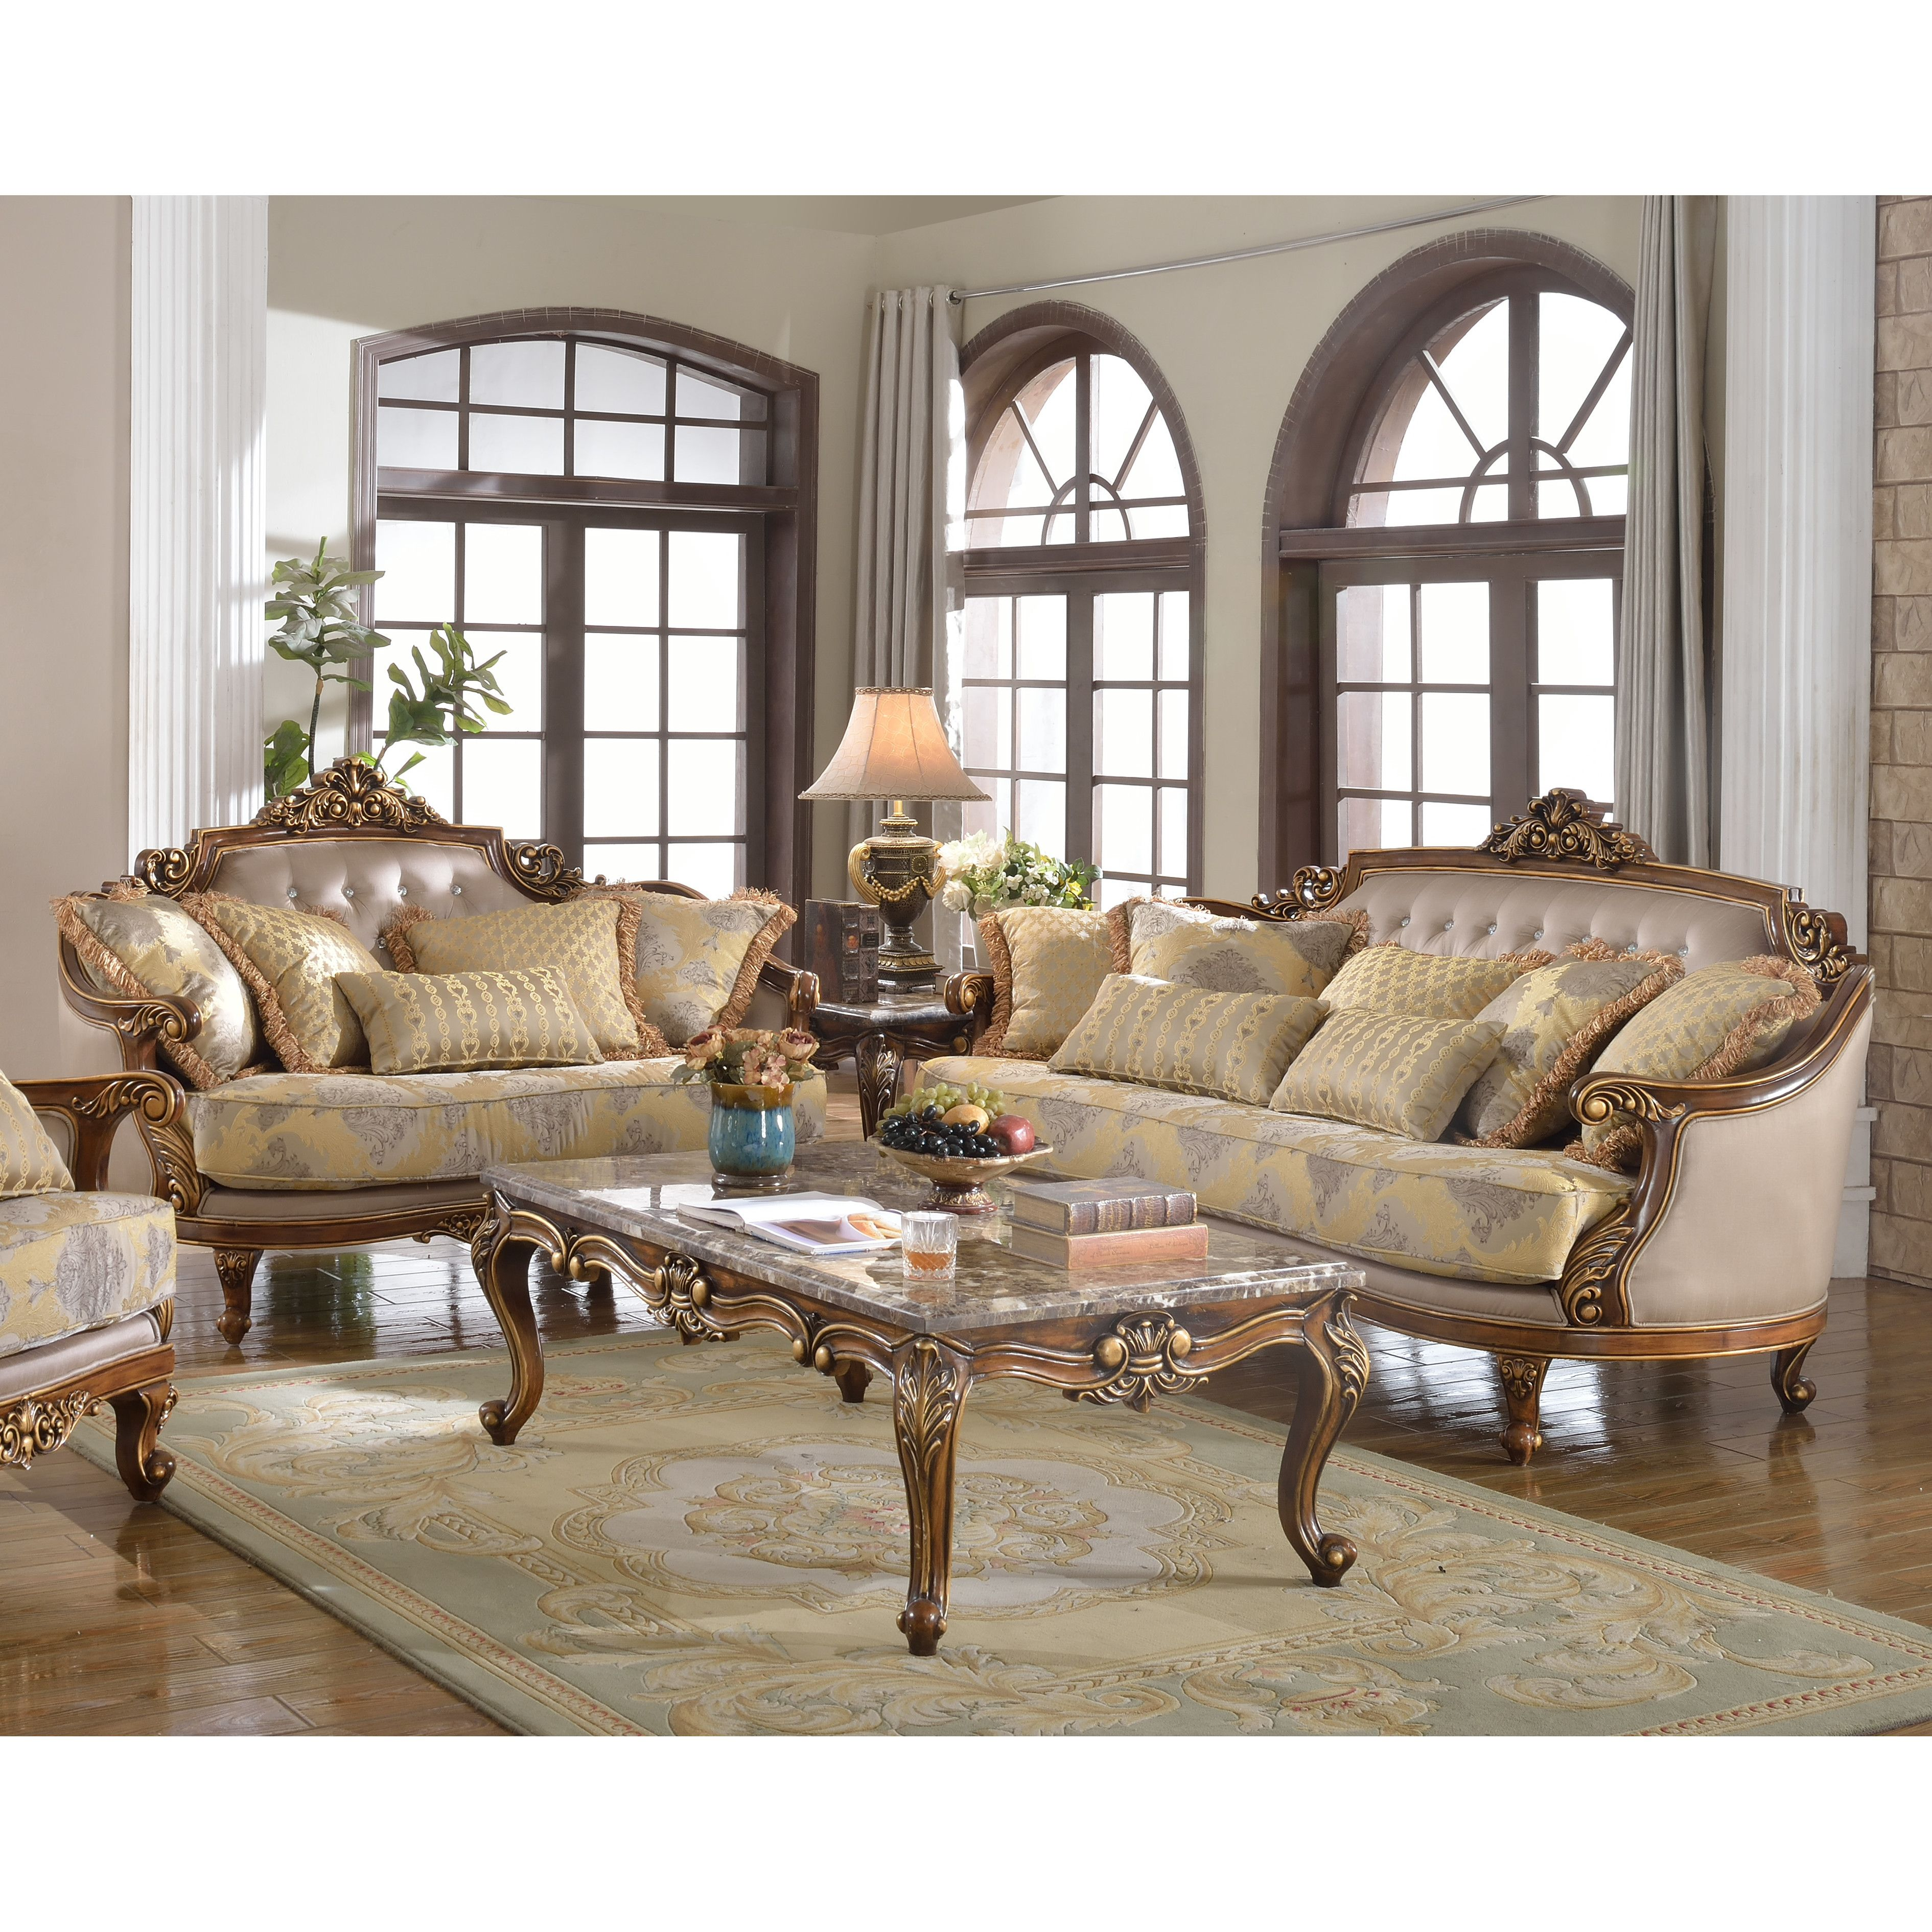 Bestmasterfurniture Traditional Sofa And Loveseat Set Reviews Wayfair Supply Sofa Loveseat Set 3 Piece Living Room Set Cheap Living Room Sets